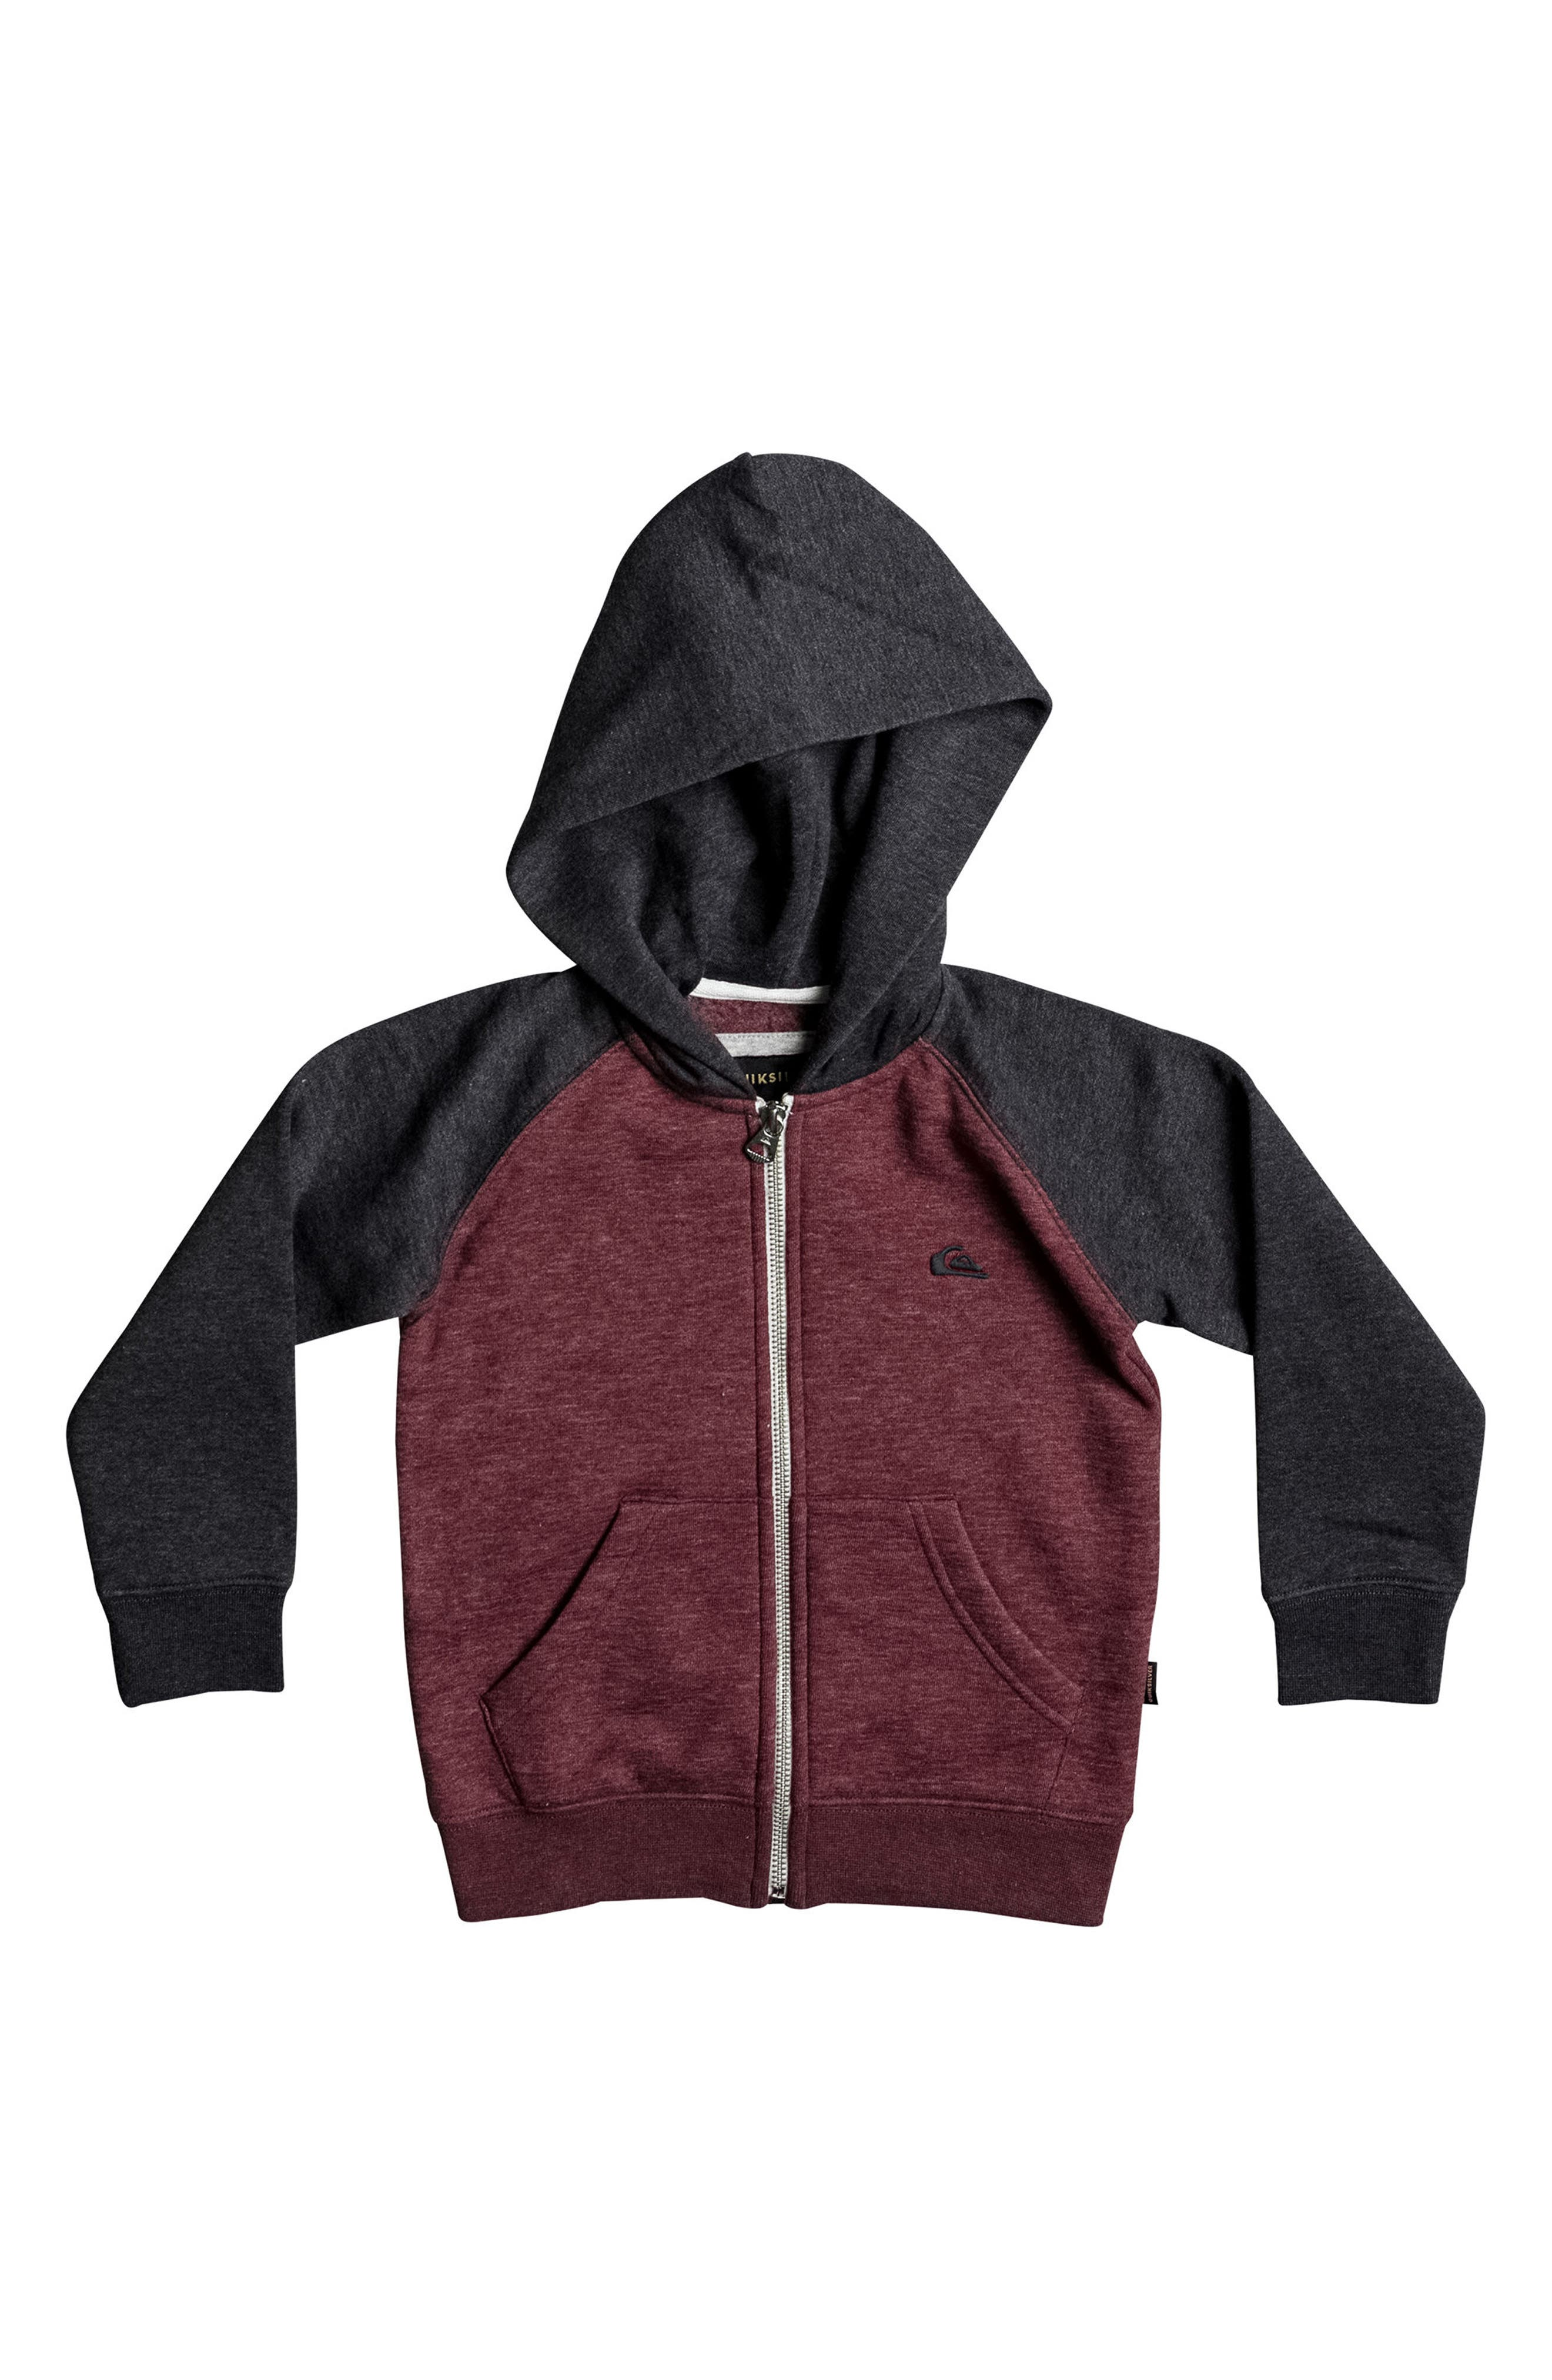 Colorblock Zip Hoodie,                             Main thumbnail 1, color,                             Pomegranate Heather